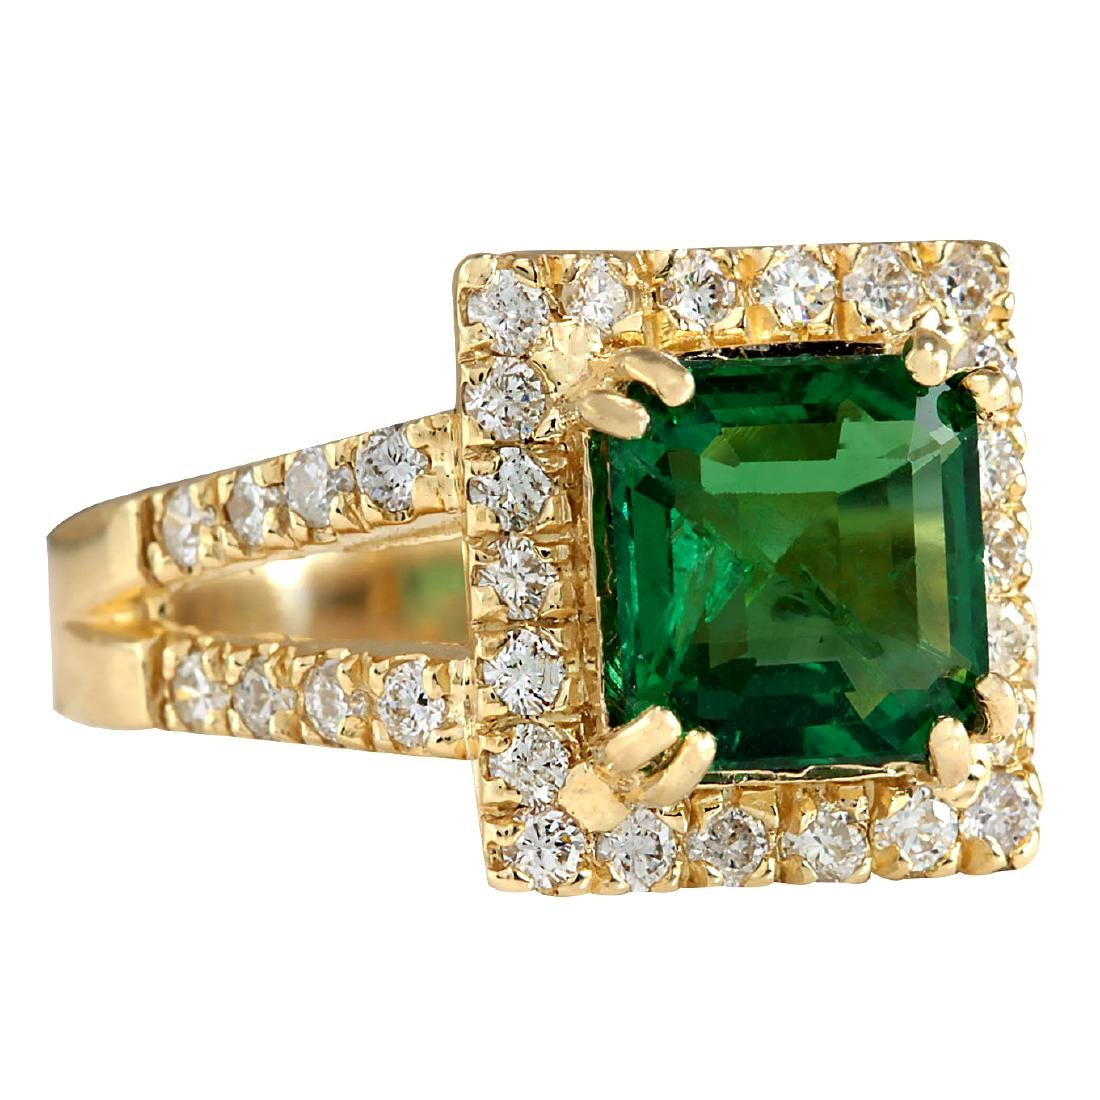 3.37CTW Natural Emerald And Diamond Ring In 18K Yellow - 2